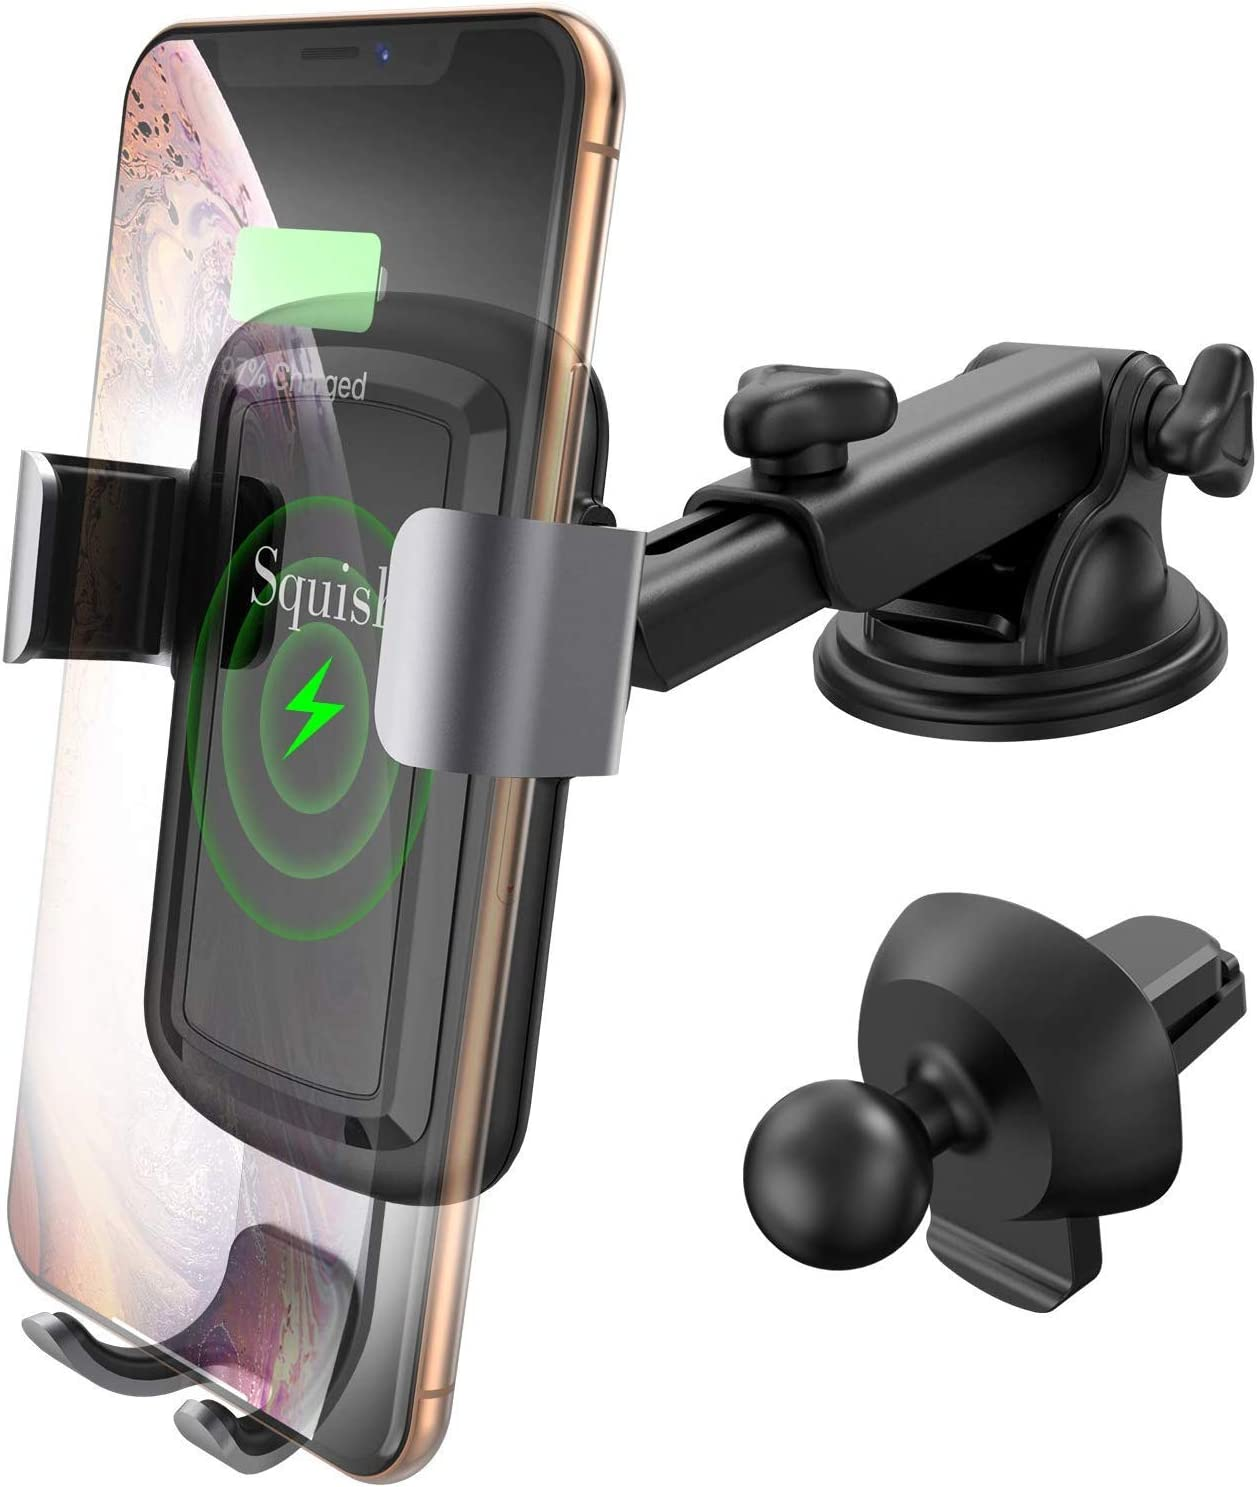 Qi Fast Charing Car Charger Mount Automatic Gravity Car Phone Holder for Dashboard Windshield Air Vent iPhone X XRr XS Max Samsung S10//S9//S9+//S8//S8+//S7//Note10//9//Note8 etc Squish Wireless Car Charger